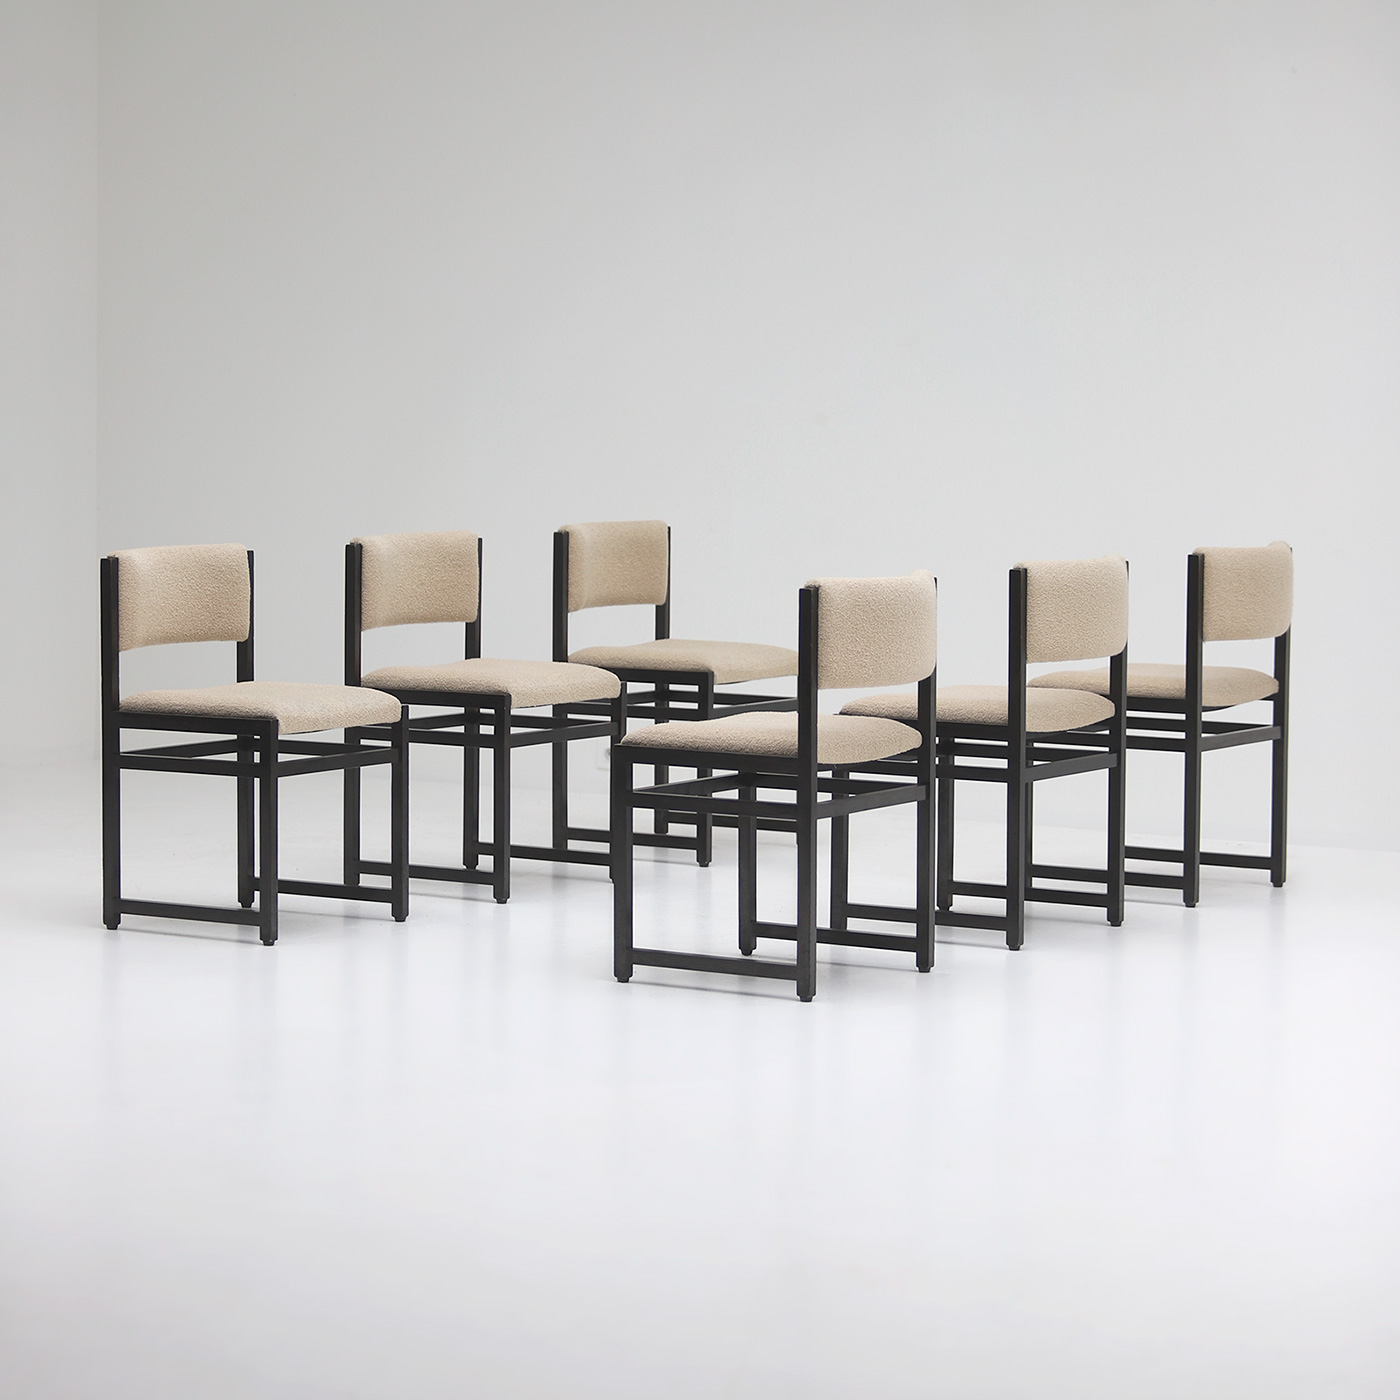 Six Black Stained Oak Chairs with Bouclé Upholstery